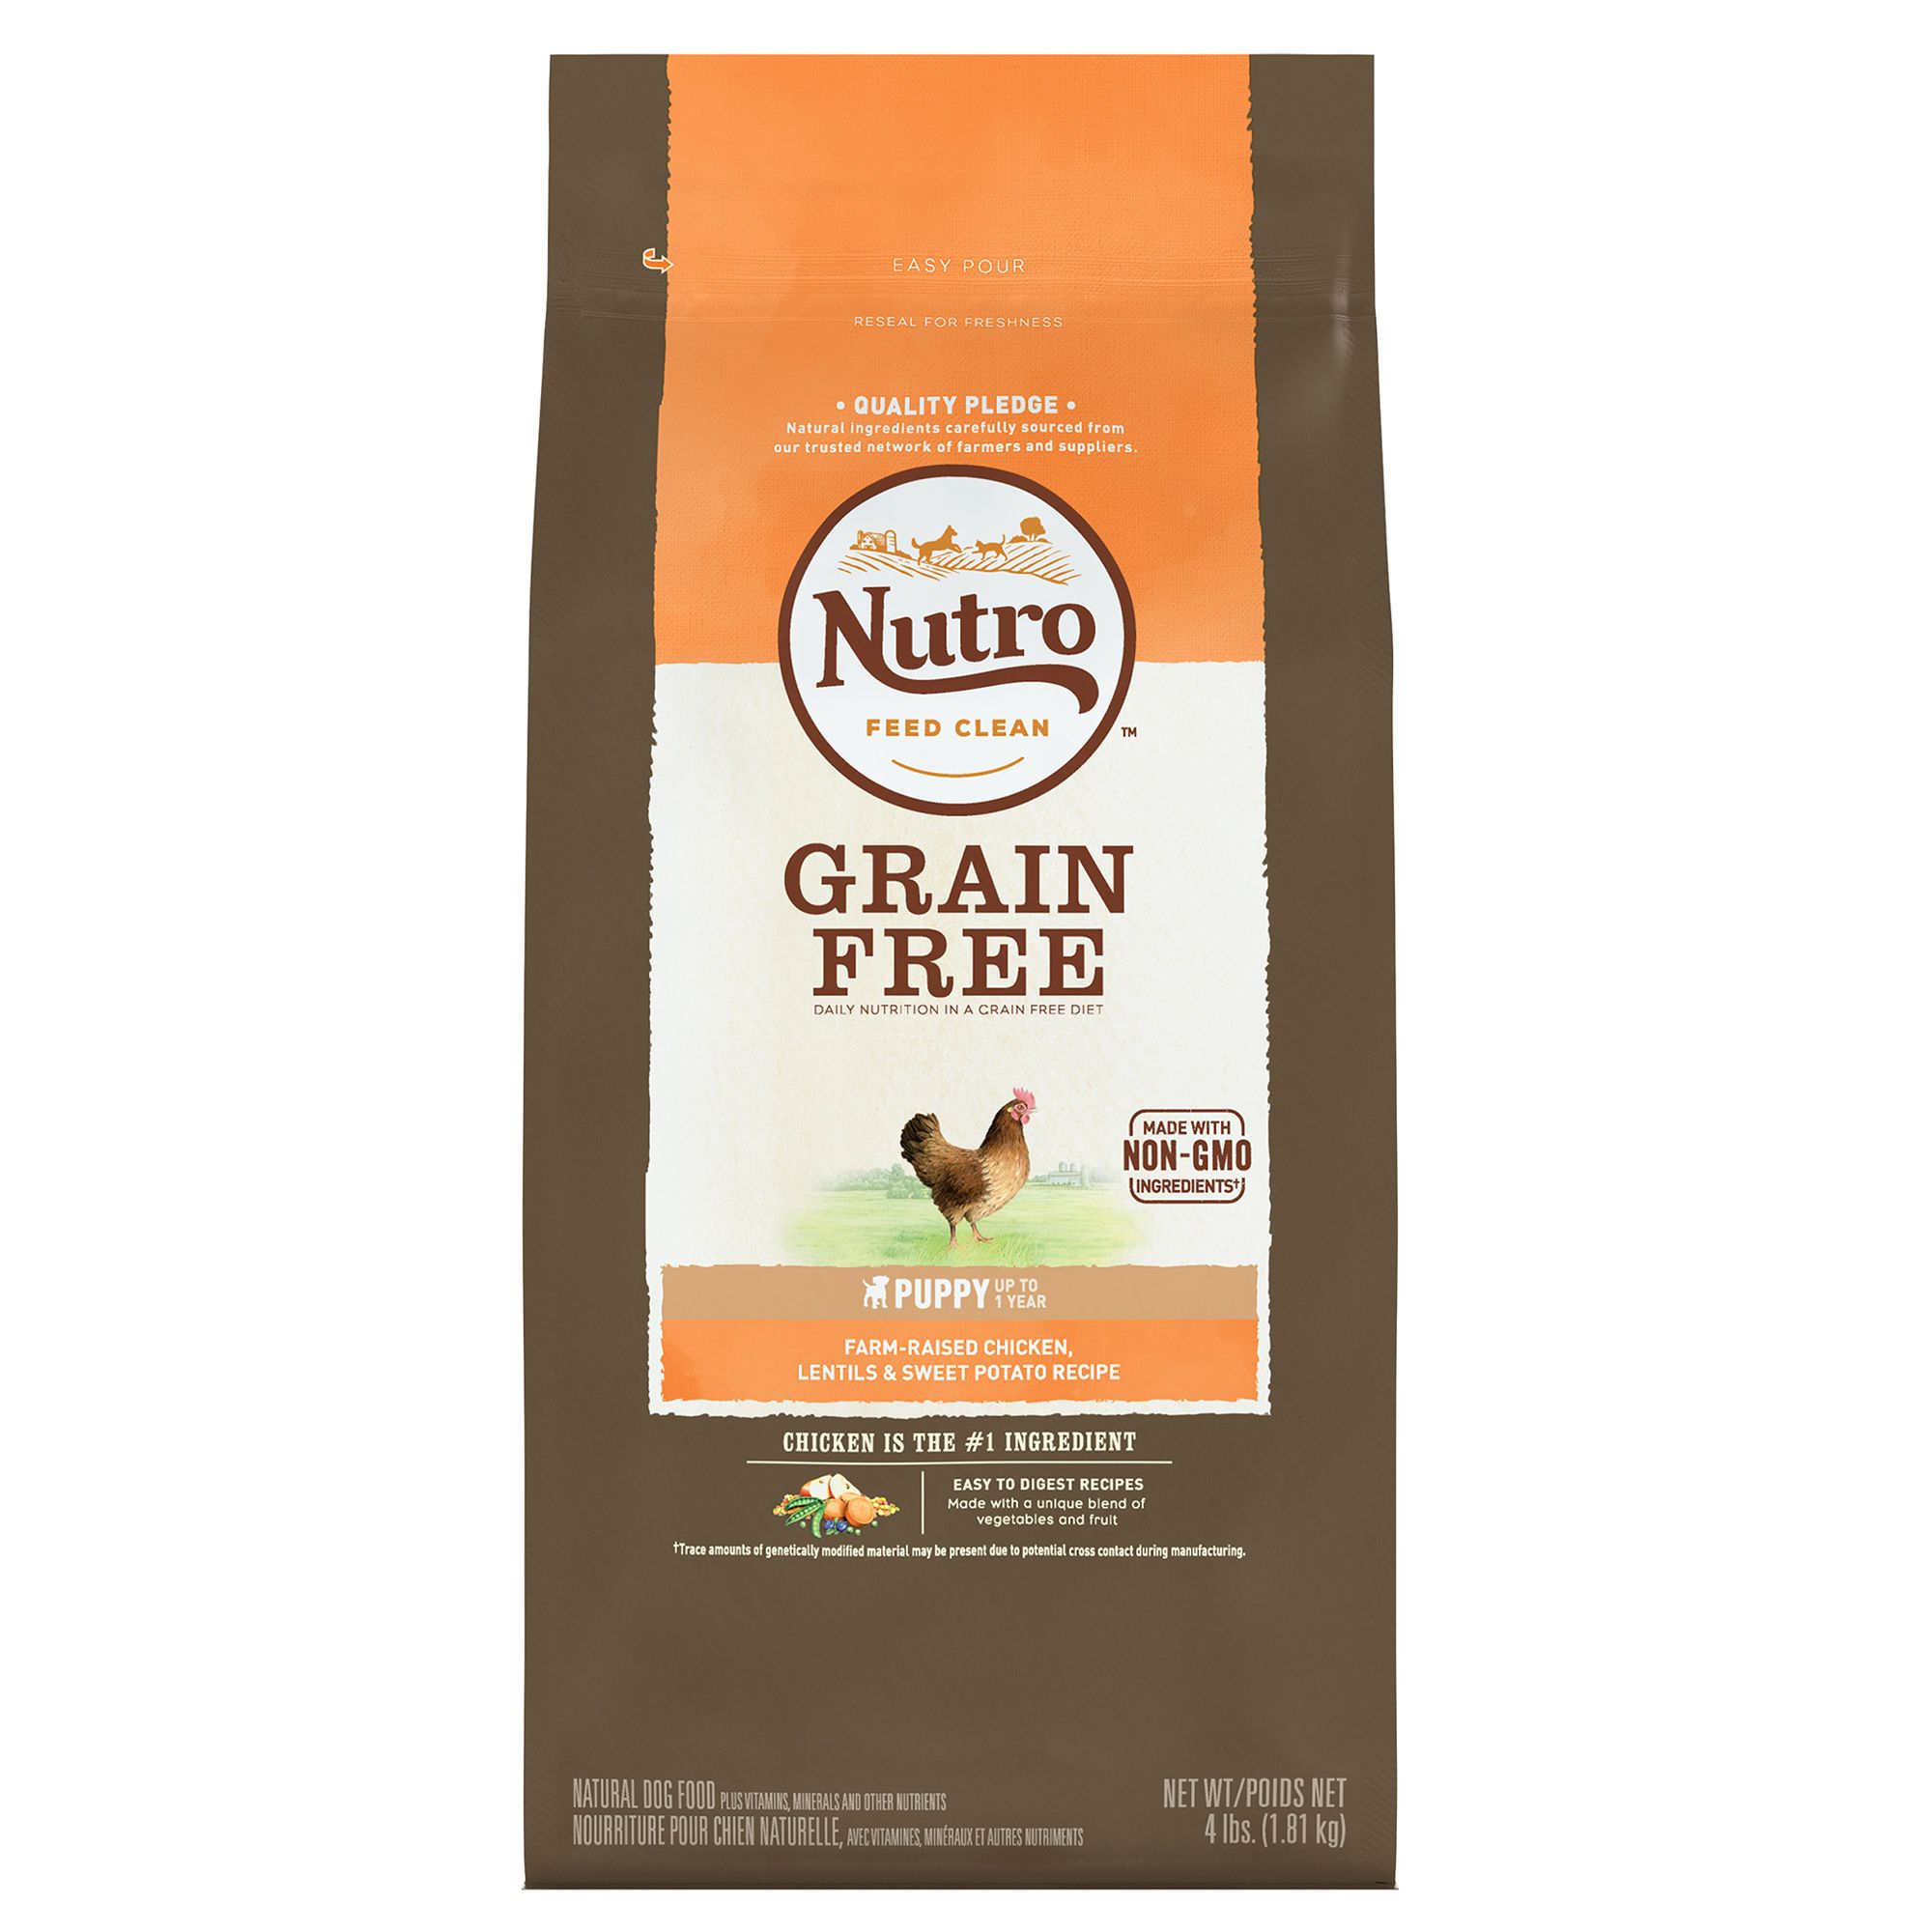 Nutro, Puppy Food - Natural, Grain Free, Non-GMO, Chicken, Lentils and Sweet Potato size: 4 Lb, Dry, Puppy (0-12 months) 5263854